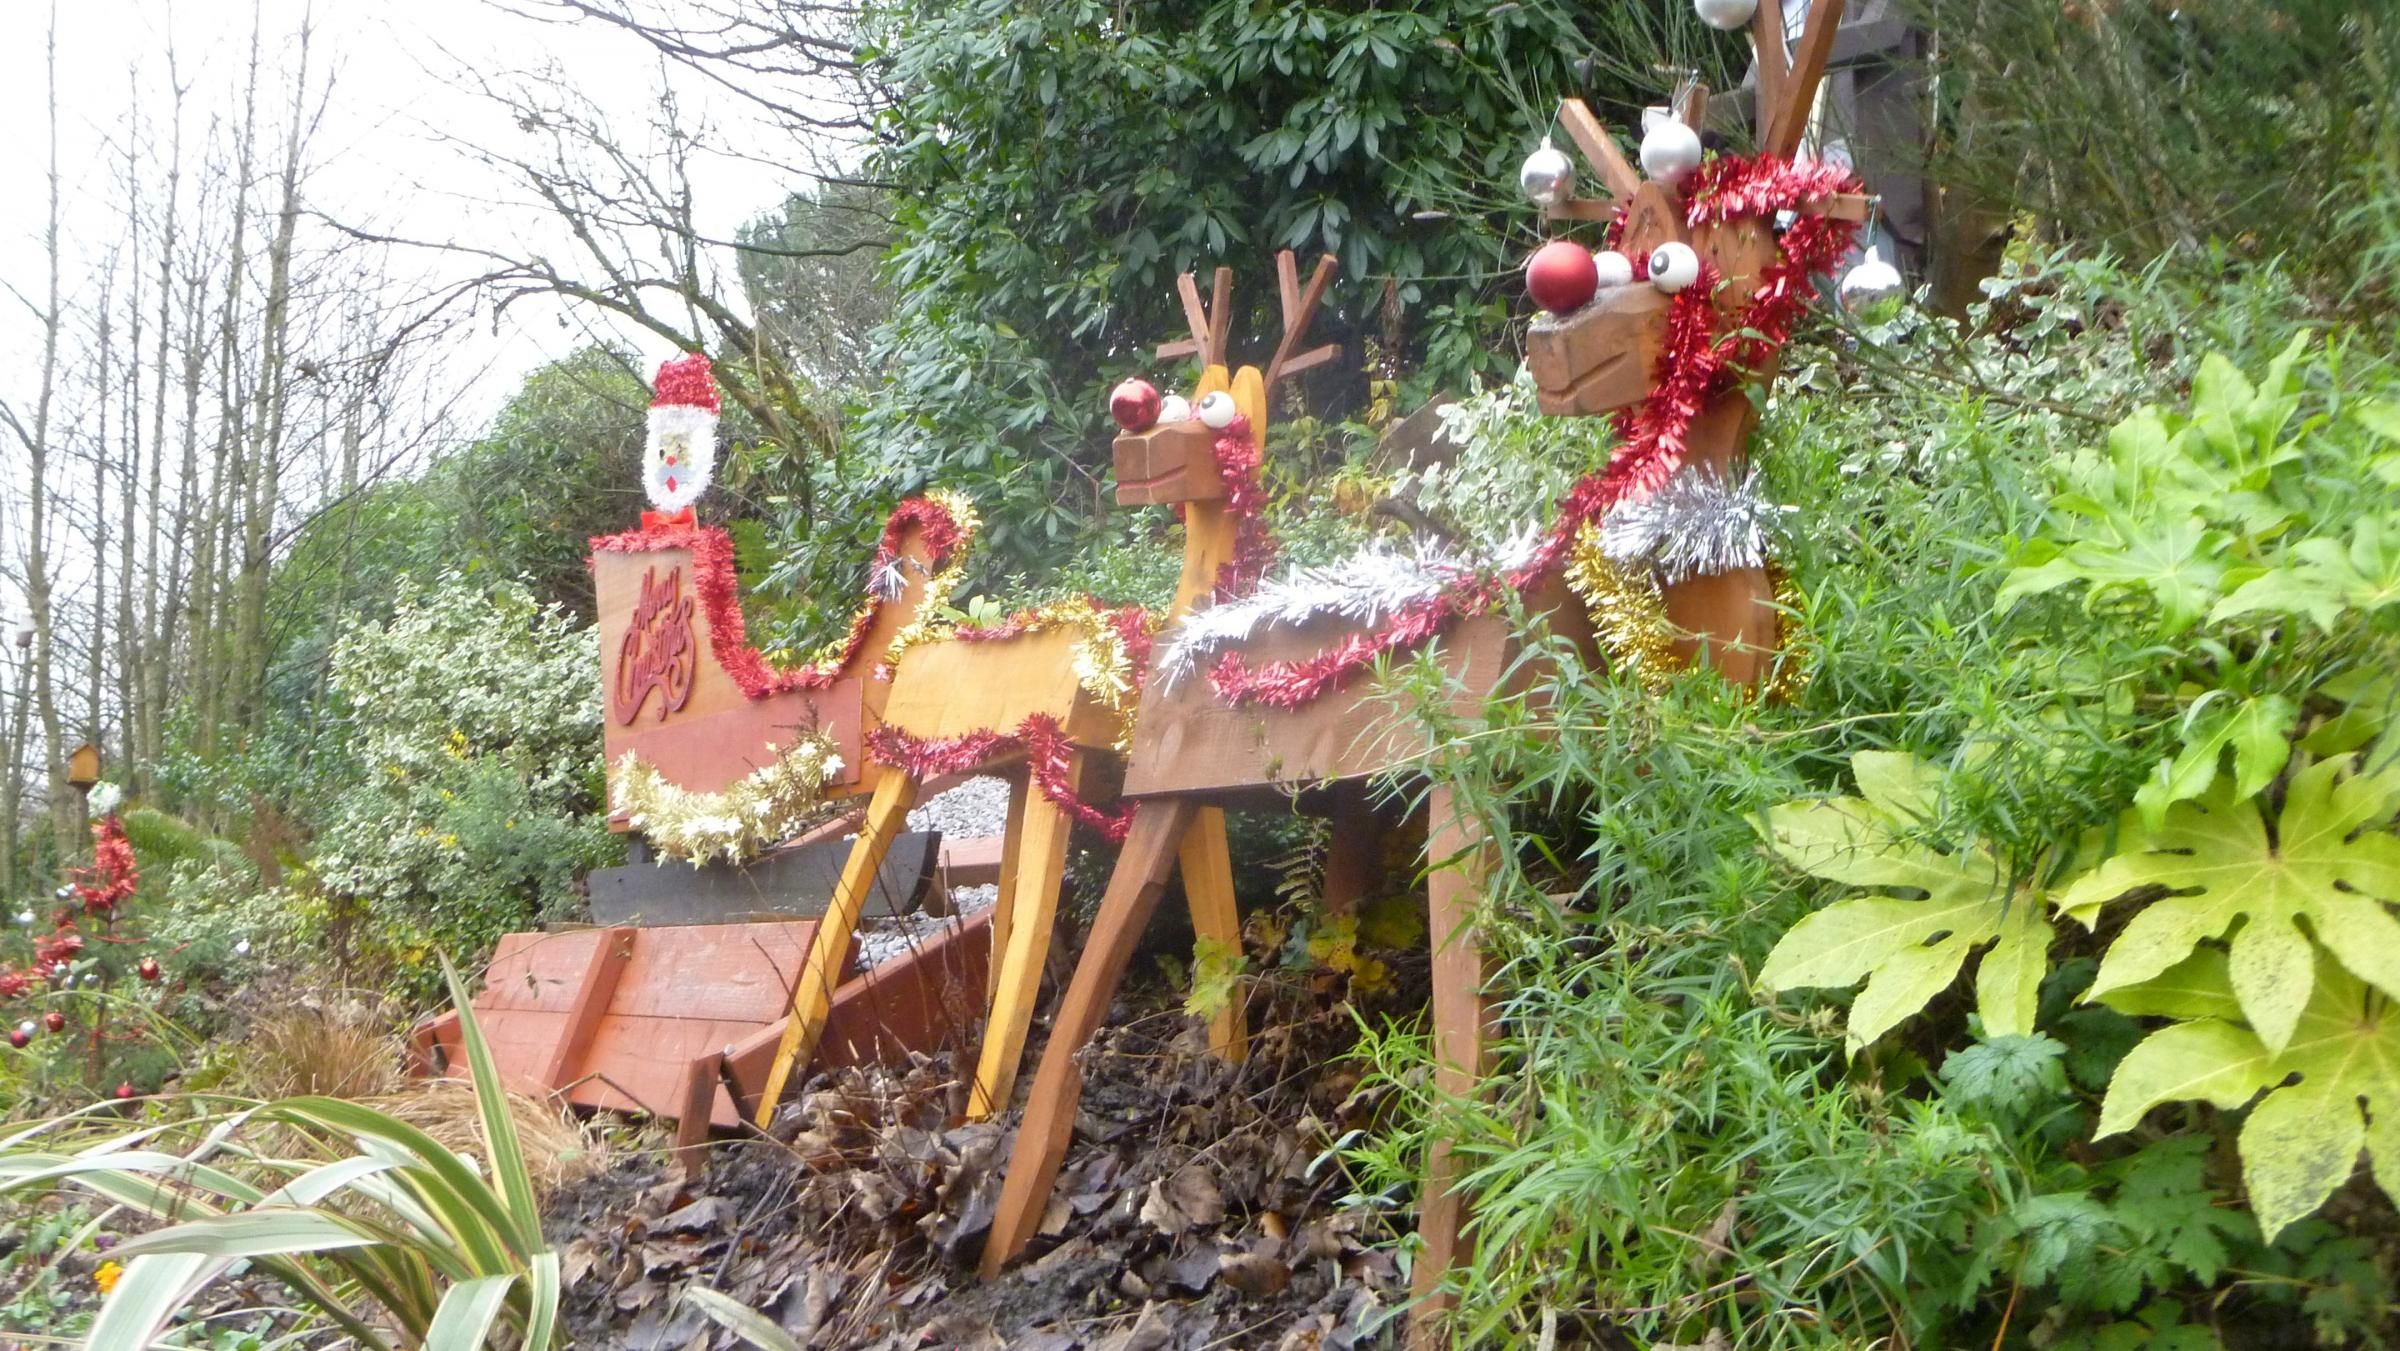 CHRISTMAS: Santa, his reindeer and his sleigh at Westhoughton Station